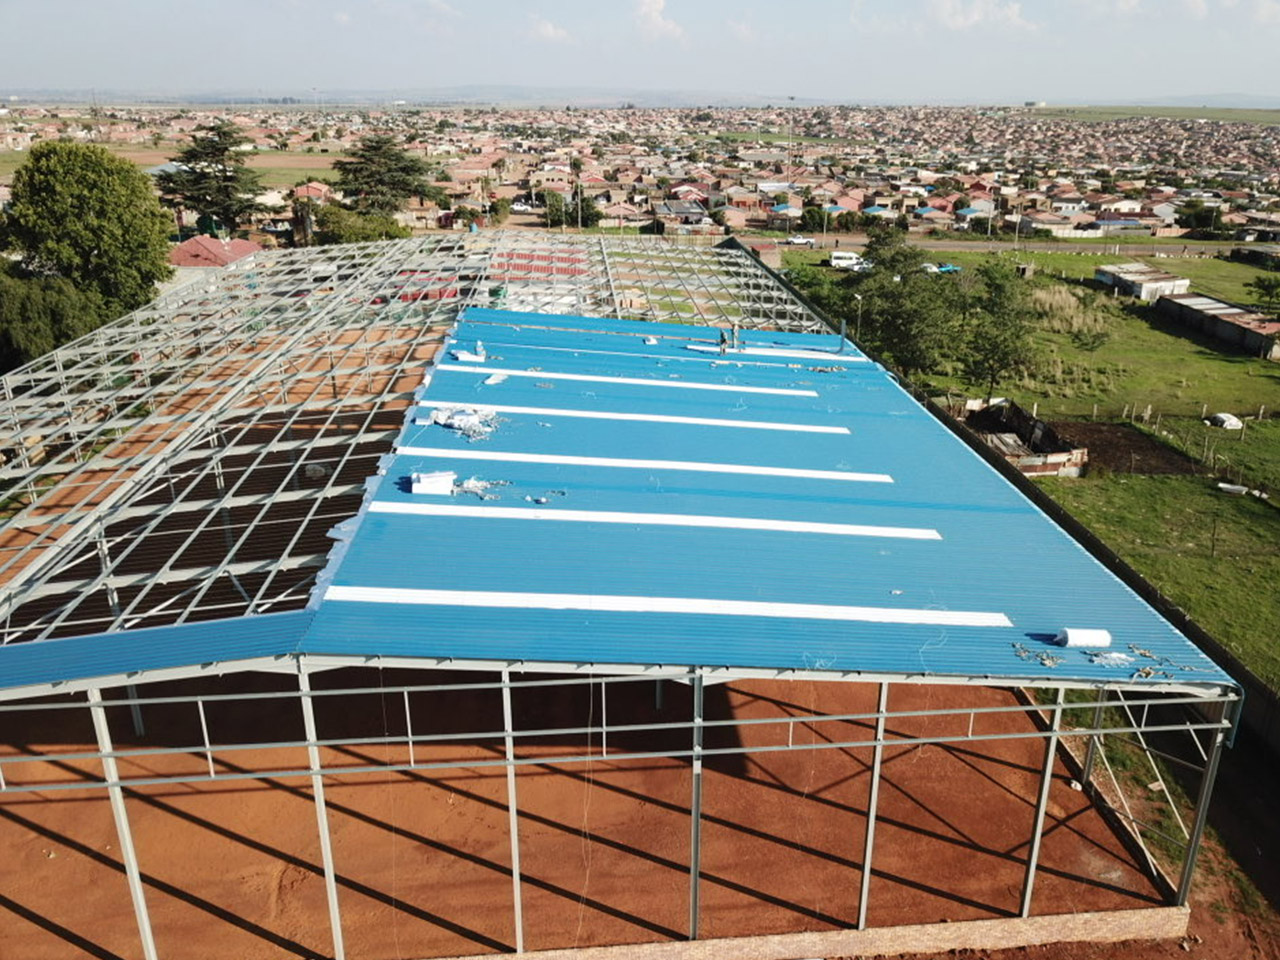 Bluegumview Cash & Carry Warehouse - structural steel and sheeting